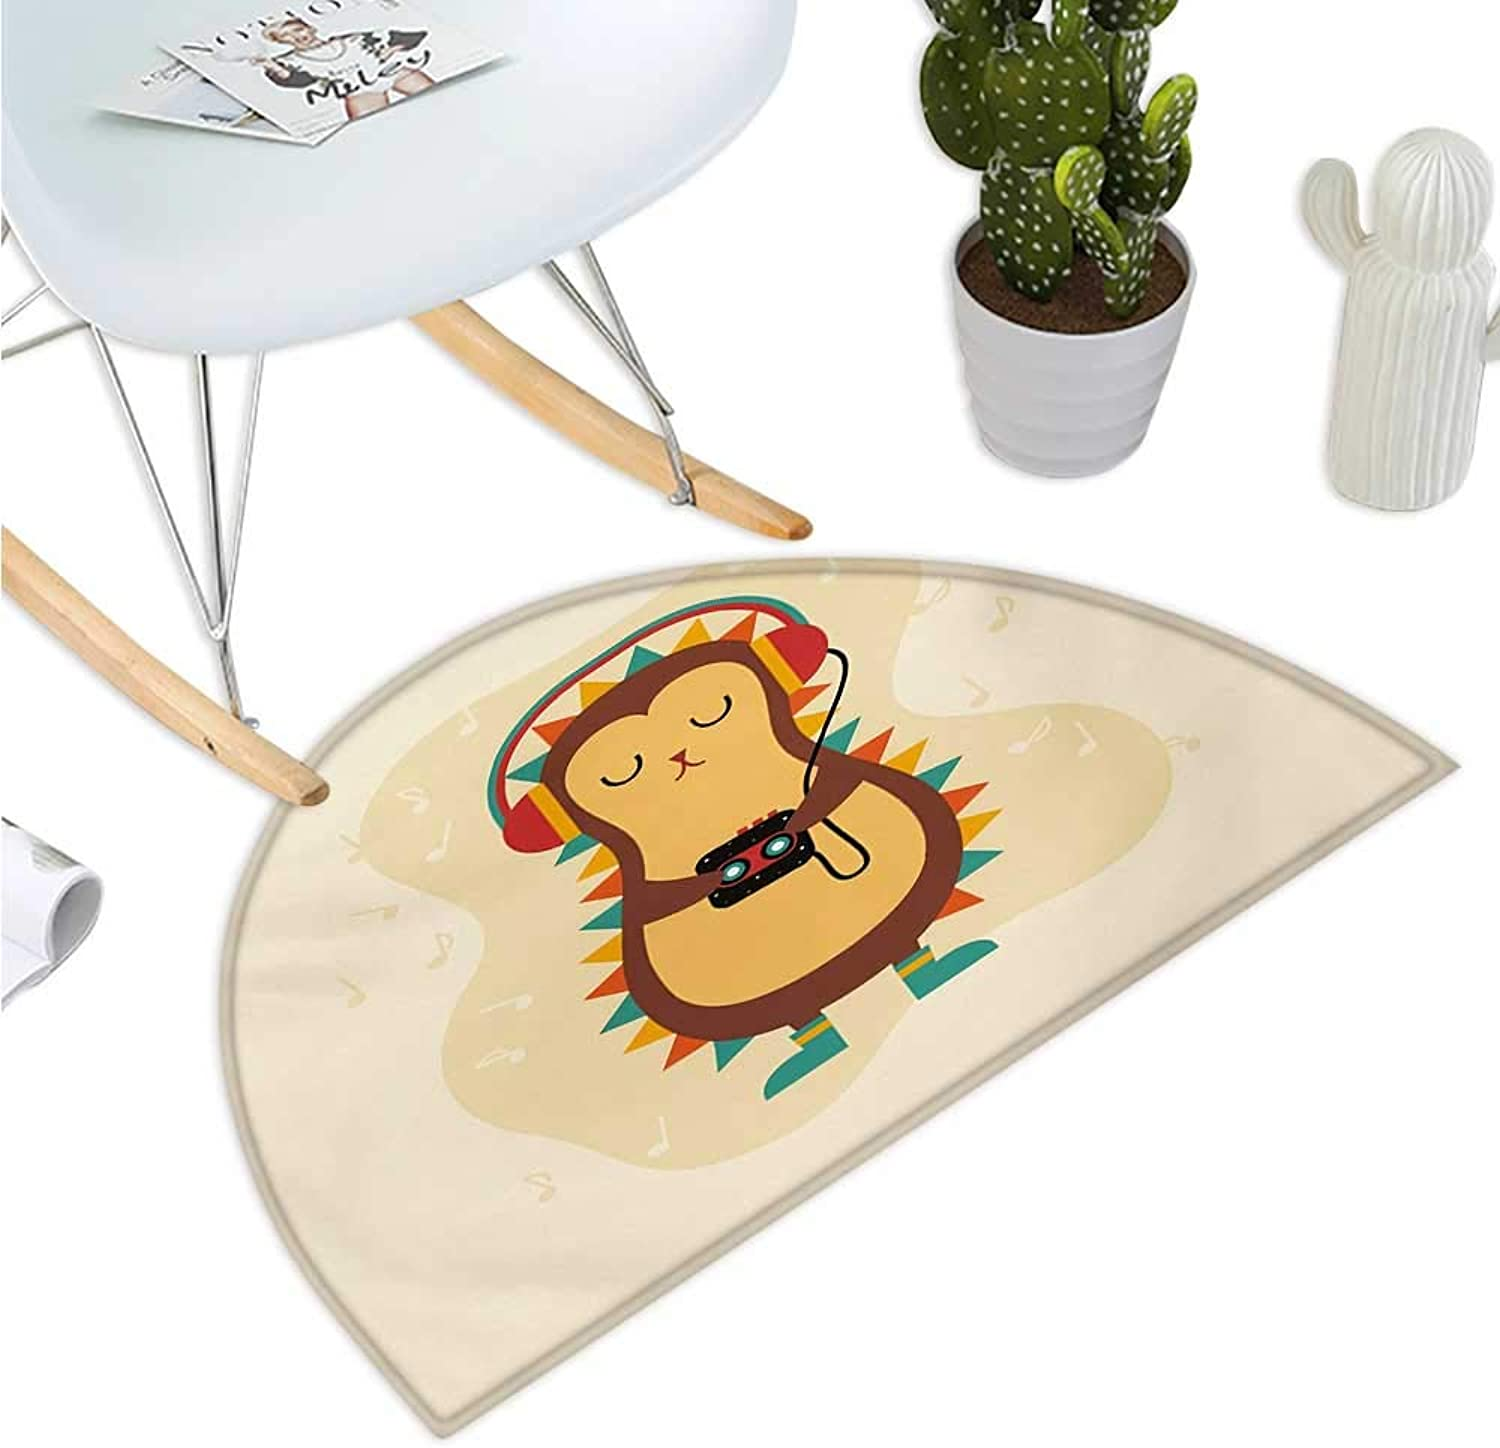 Hedgehog Half Round Door mats Animal with Spikes Listening Music from Its Retro Cassette Player Vintage Inspired Entry Door Mat H 43.3  xD 64.9  Multicolor